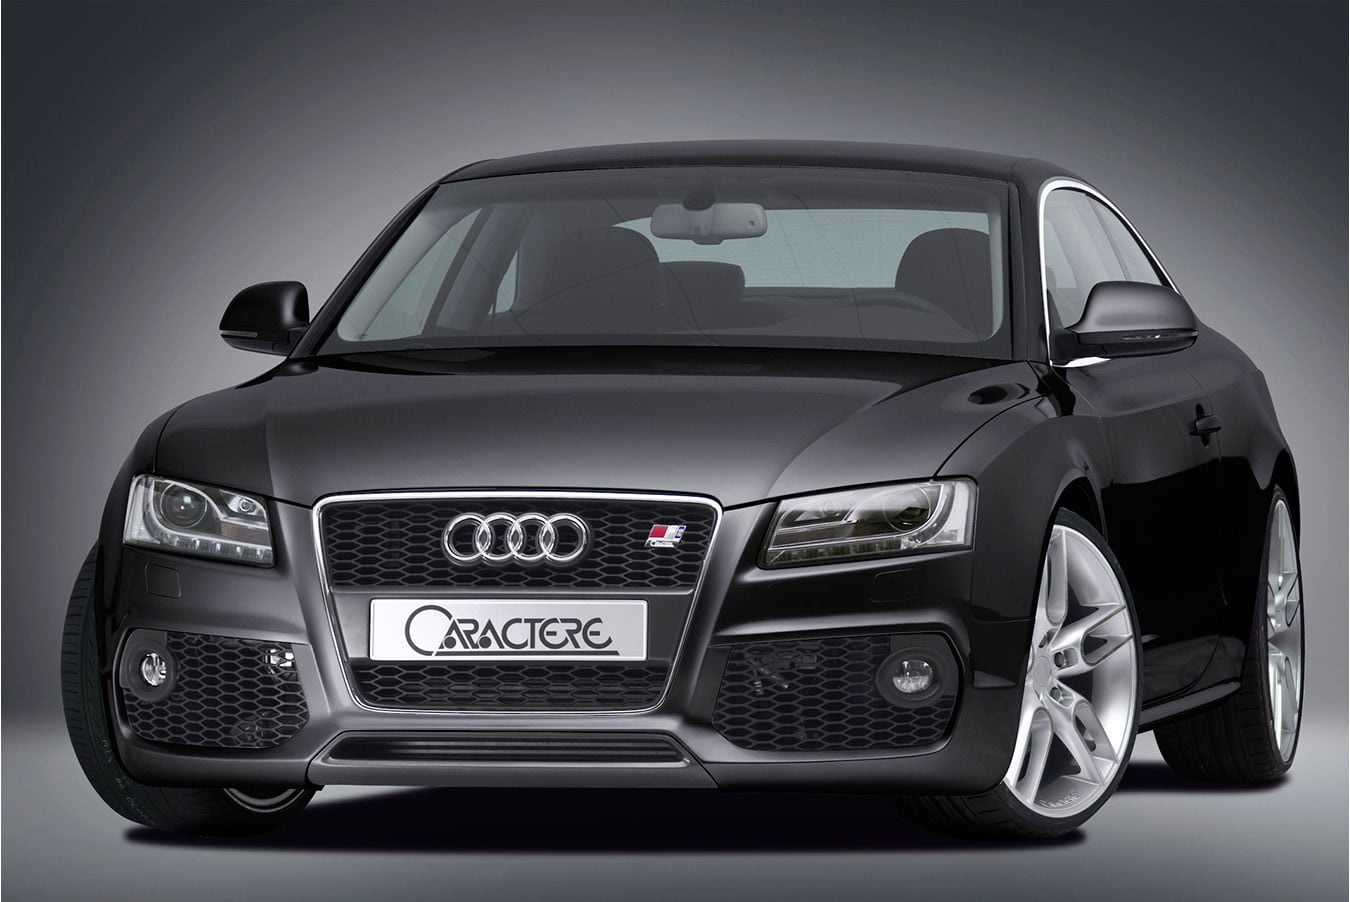 Caractere Front Bumper For Cars With Original Foglights And Parking 2011 A6 Fog Lights Sensors Fits Audi A5 B8